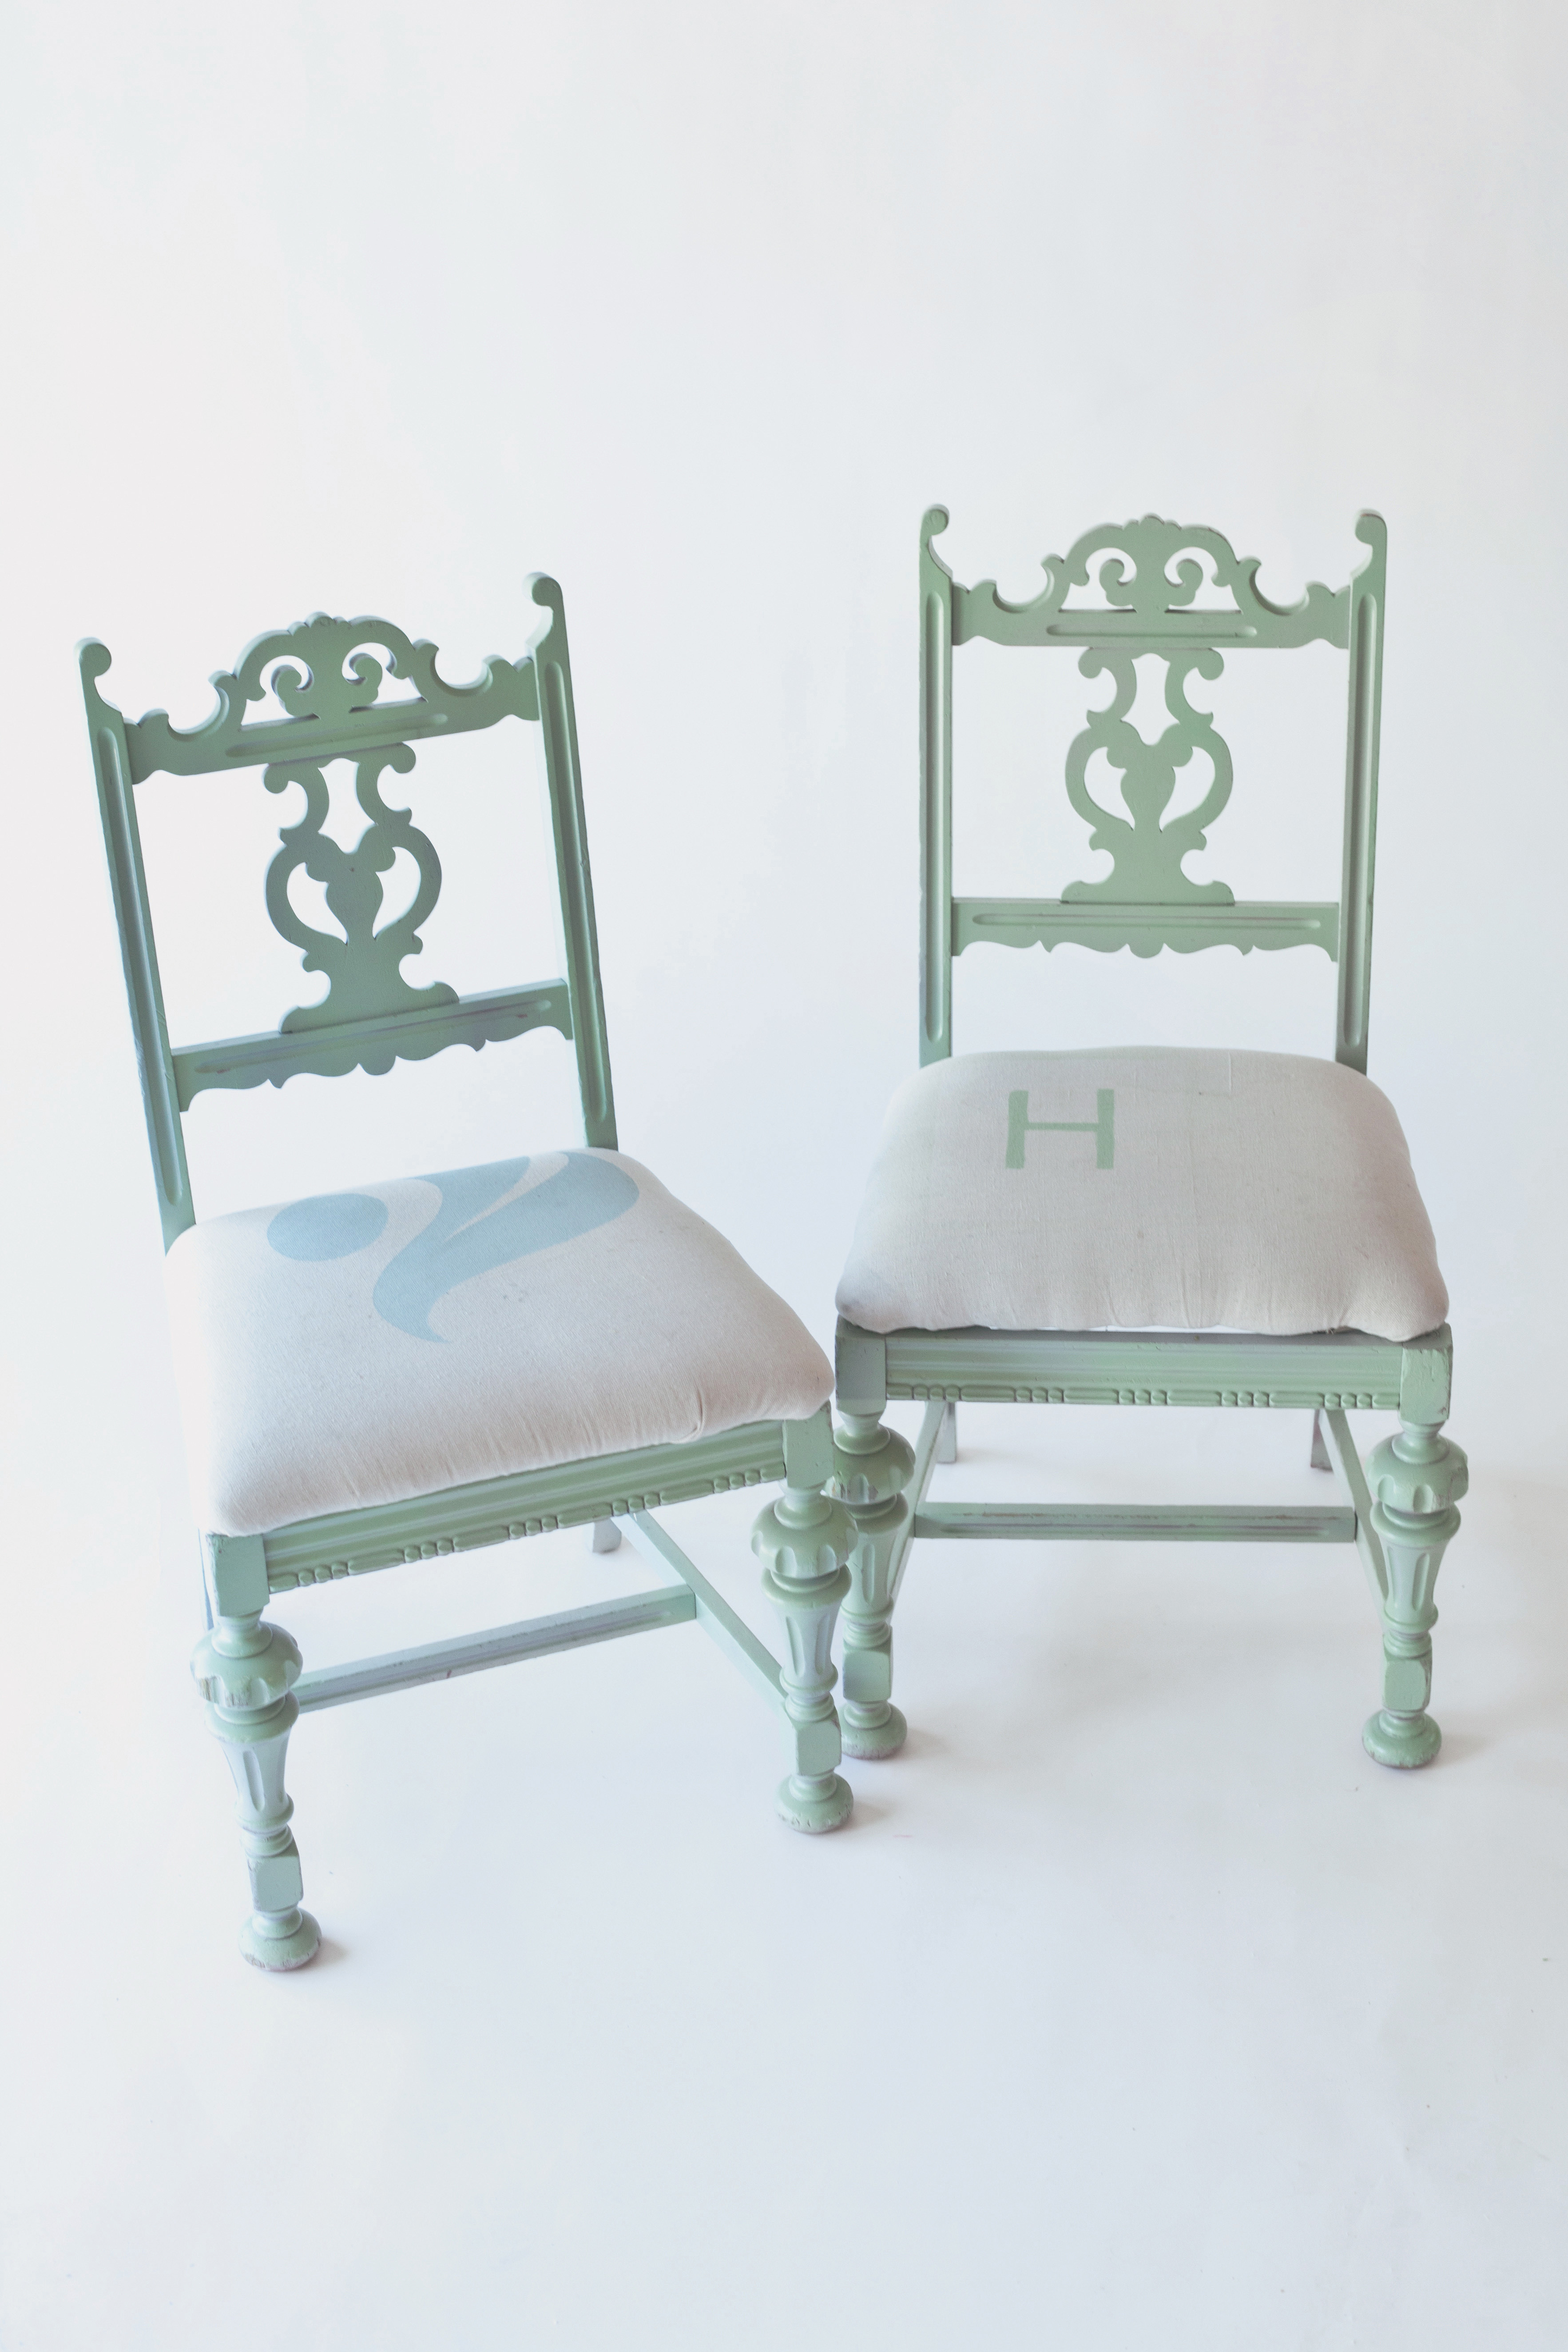 spray painted chairs